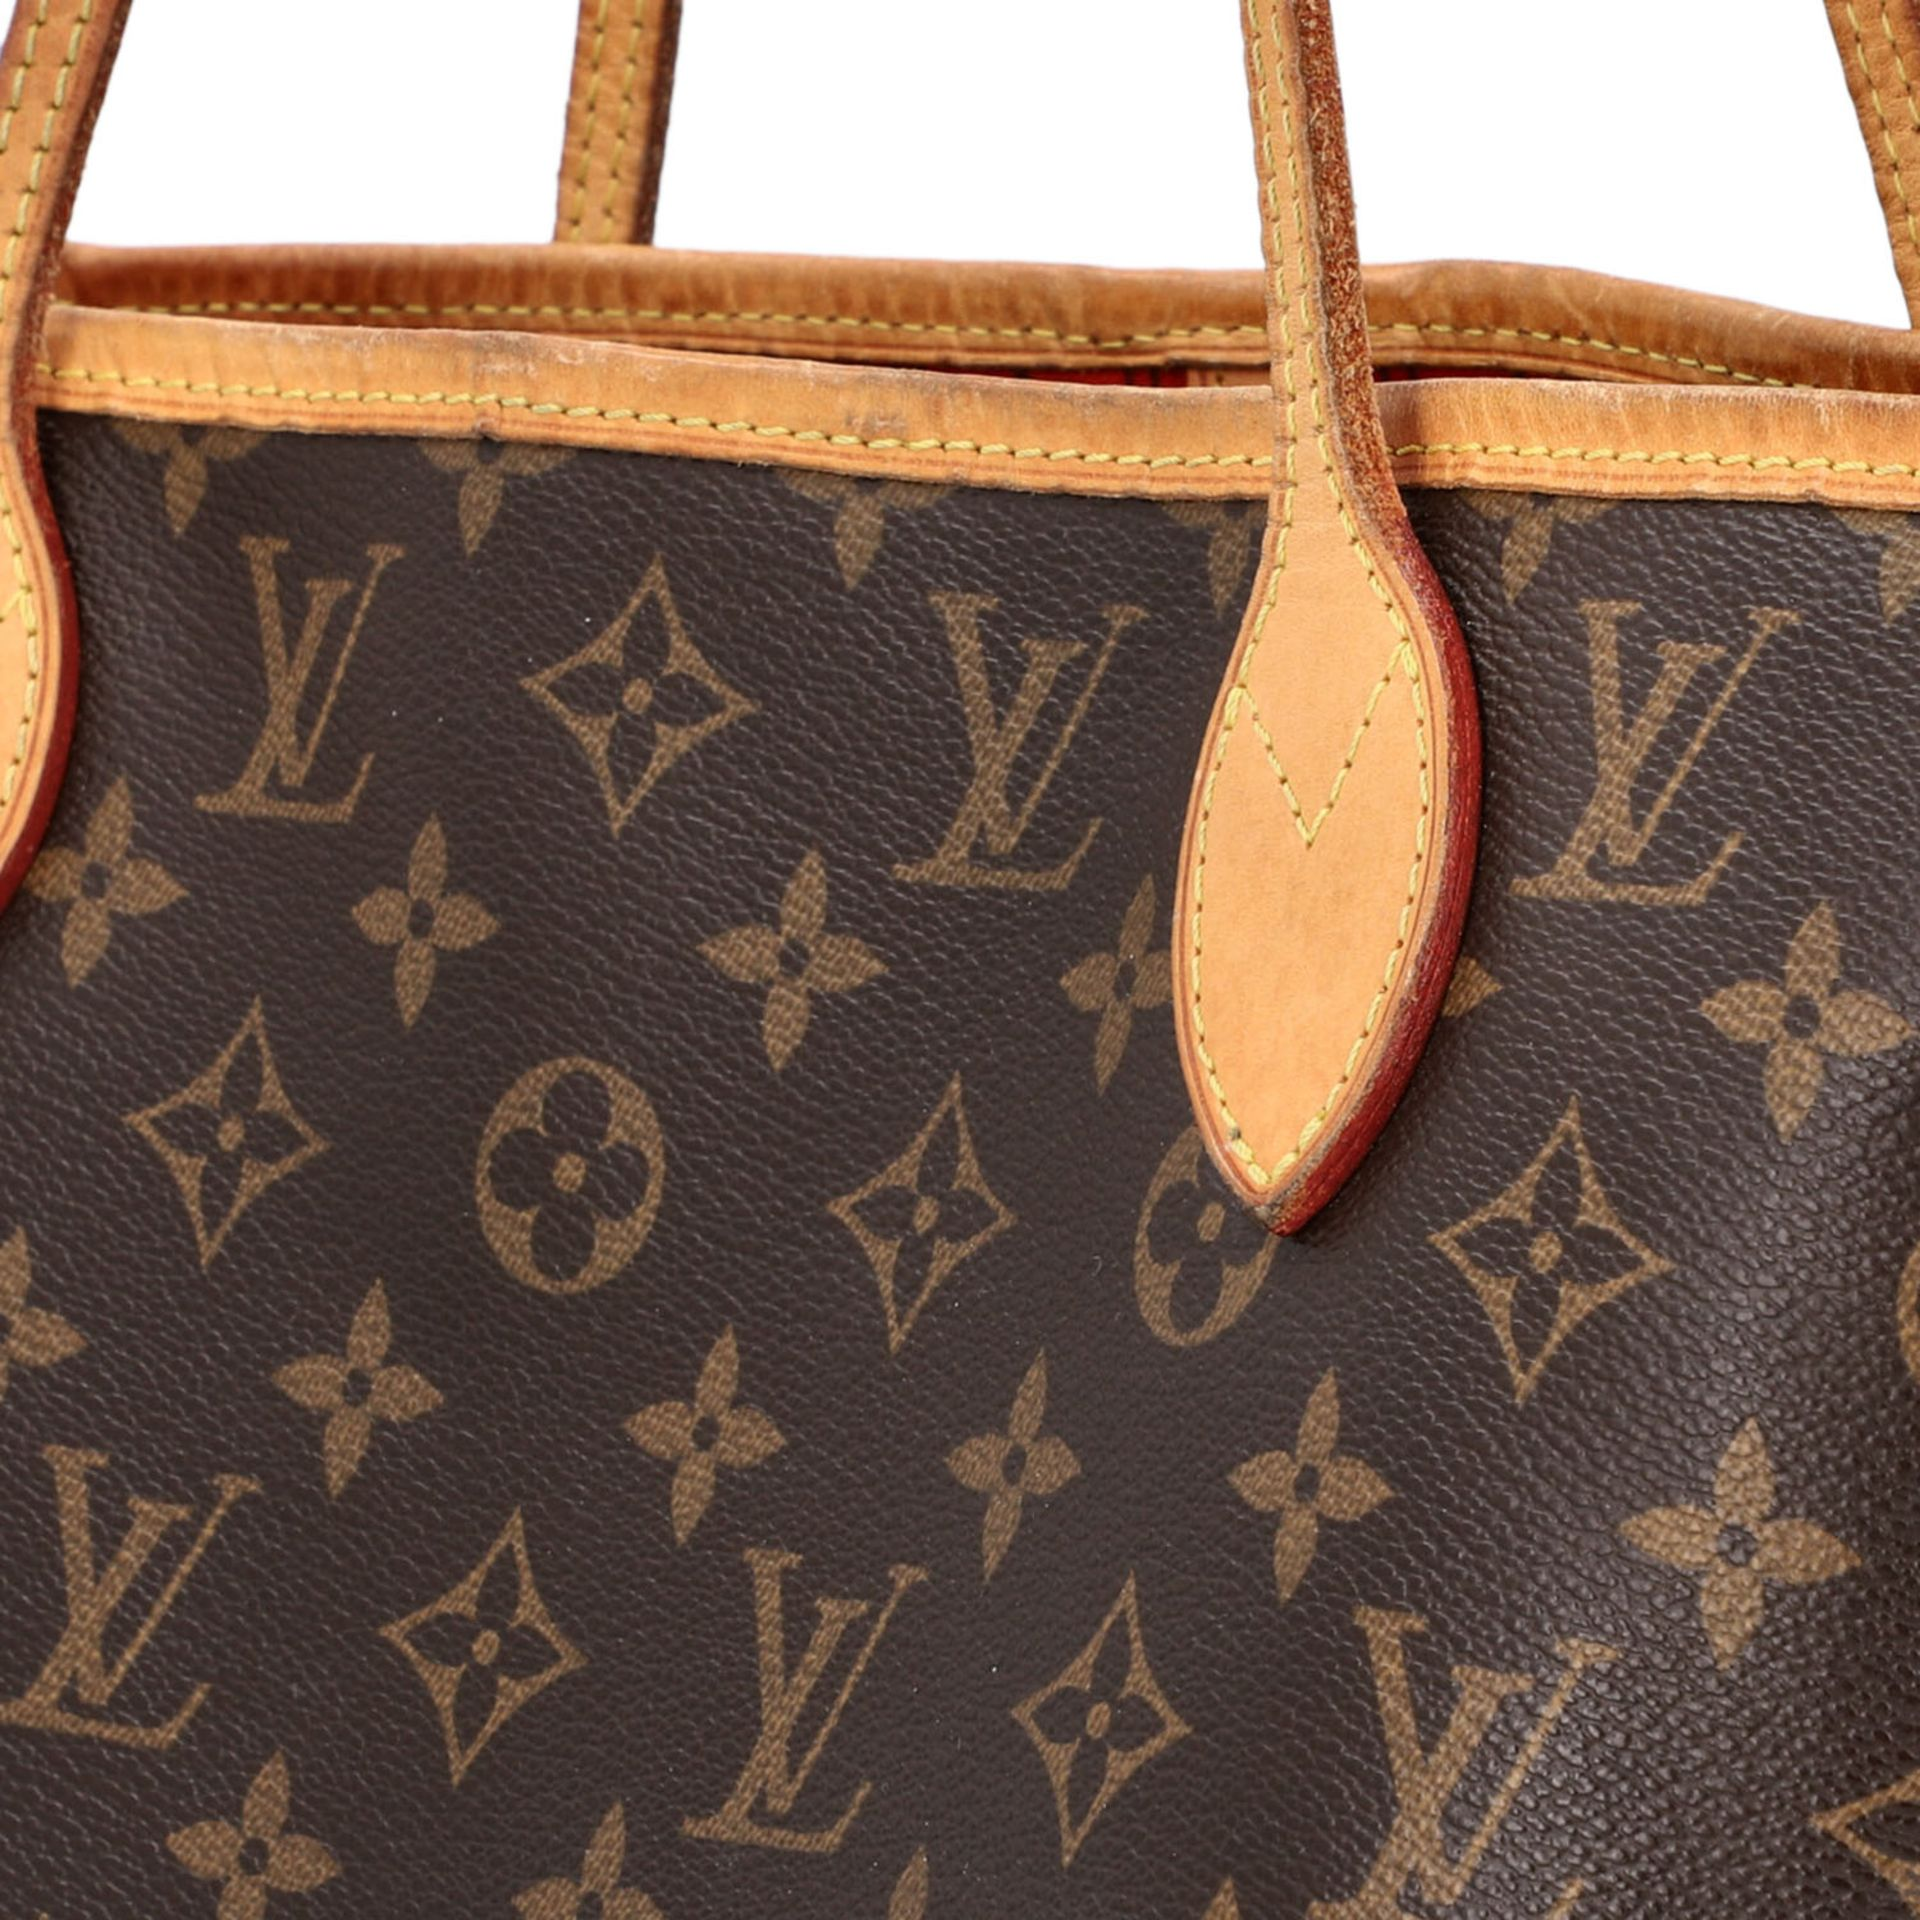 "LOUIS VUITTON Shoppertasche ""NEVERFULL MM"", Koll. 2014. Akt. NP.: 1150,-€. Monogram - Image 7 of 8"